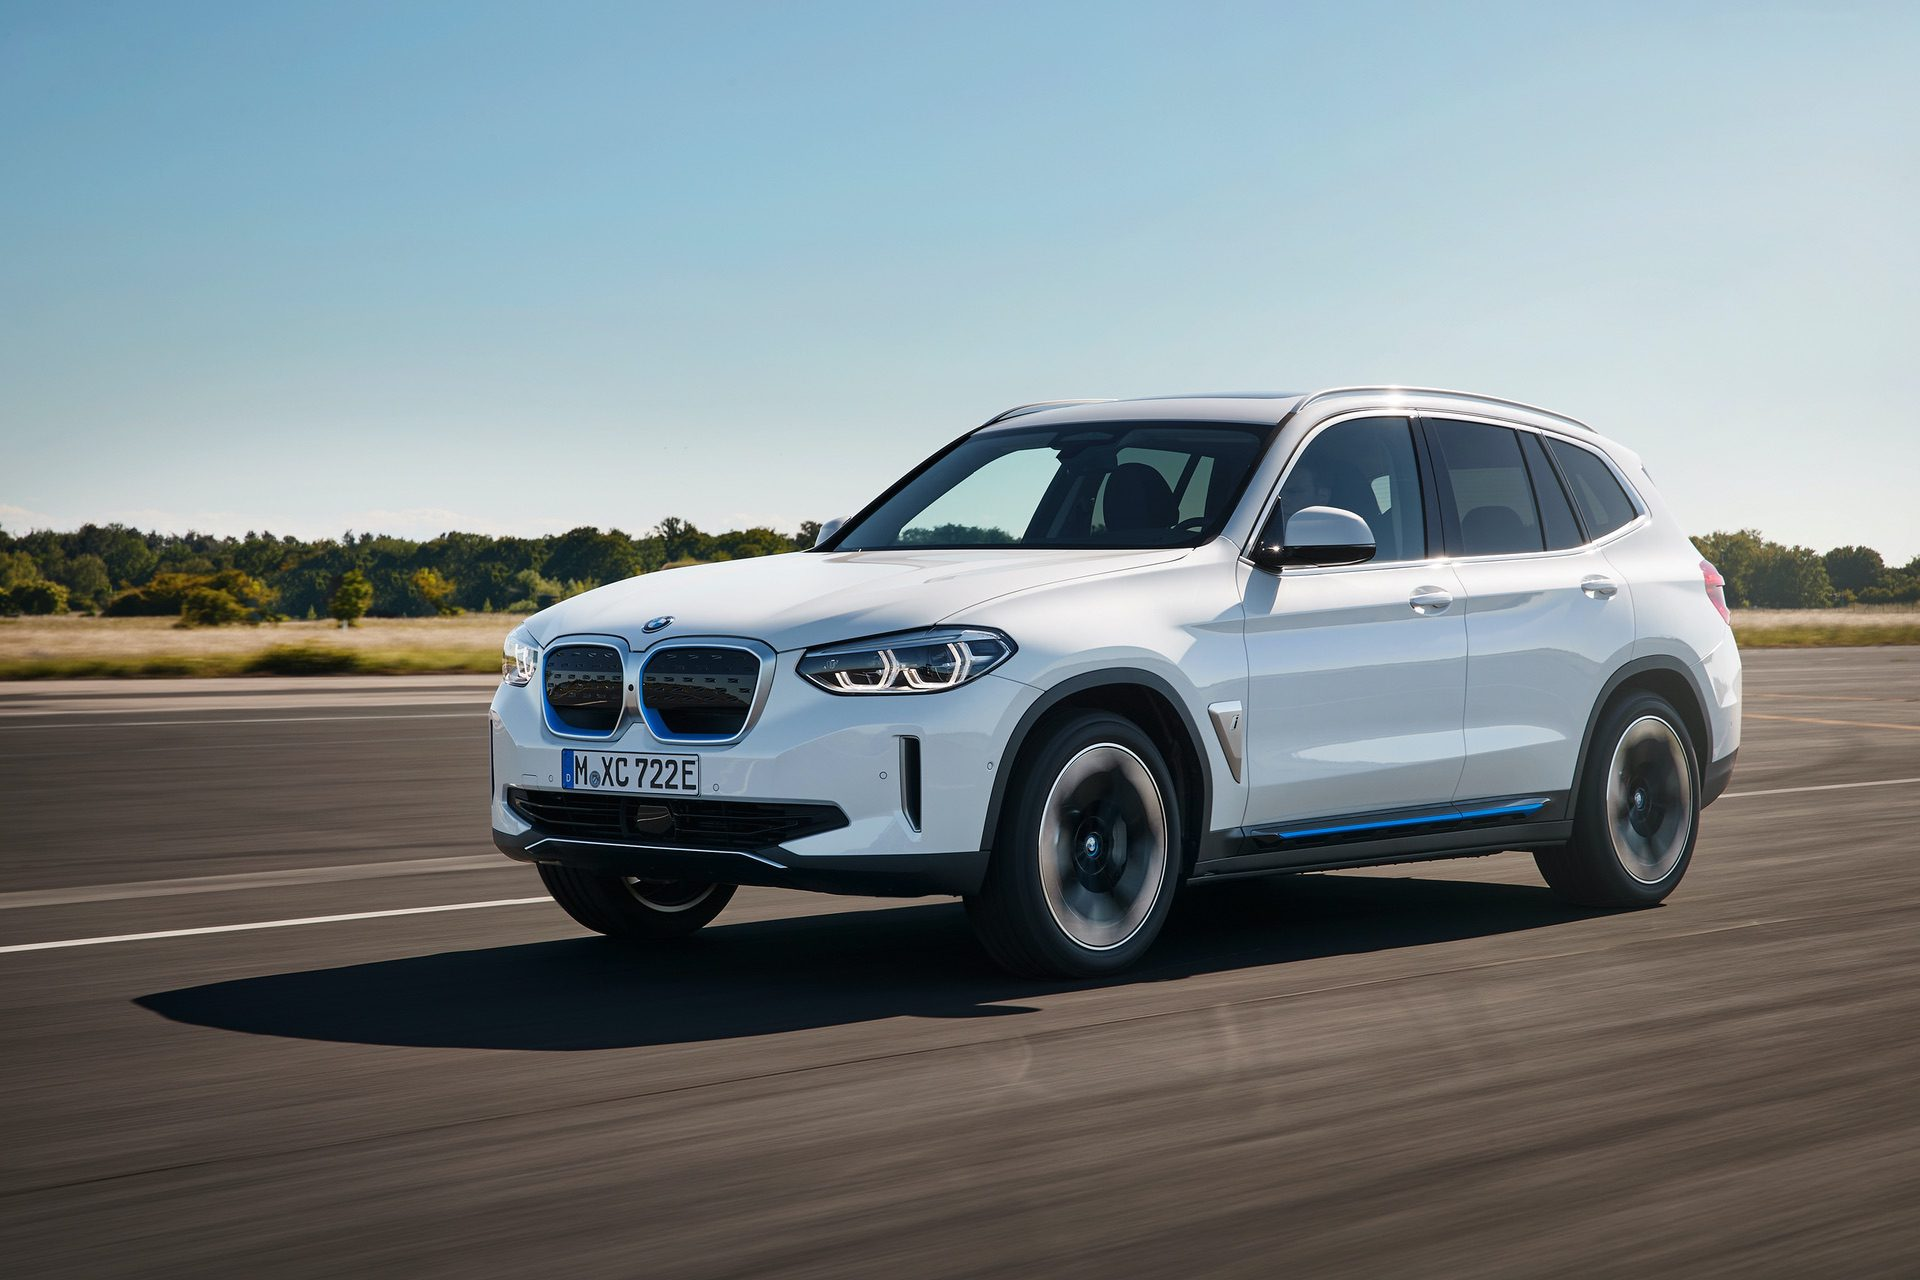 2020 BMW iX3 electric SUV 04